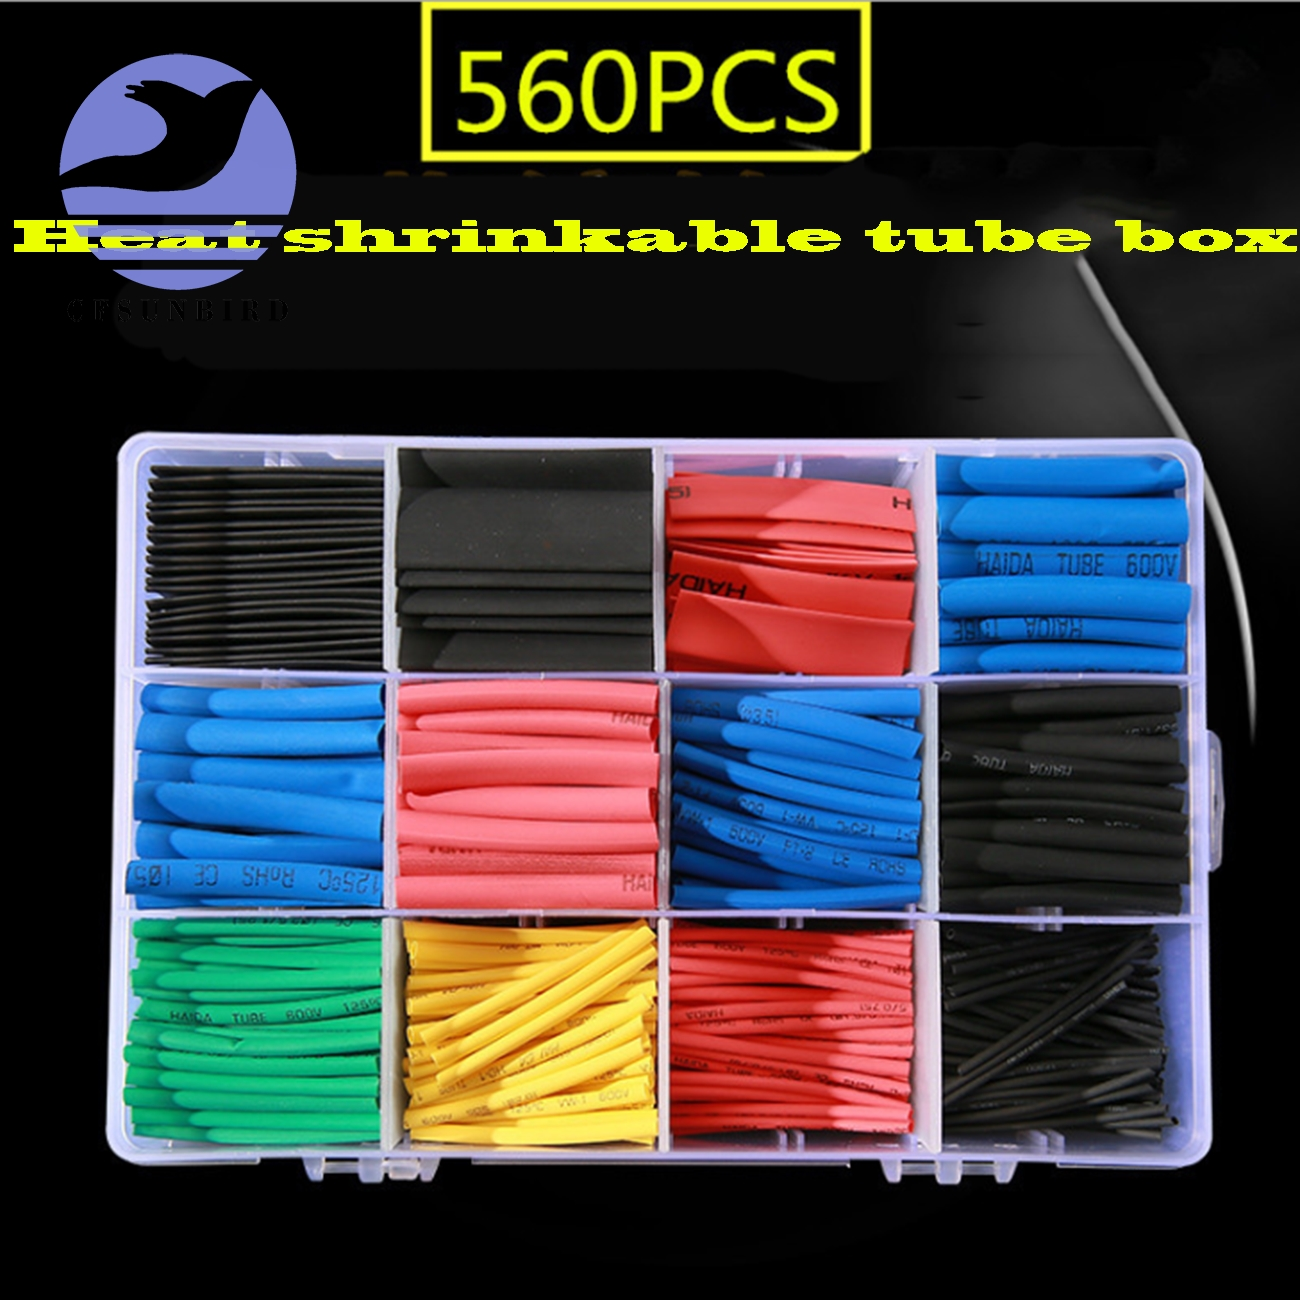 560 Pcs Heat Shrink Tubing 2:1 Electrical Wire Cable Wrap Assortment Electric Insulation Tube Kit With Box(China)